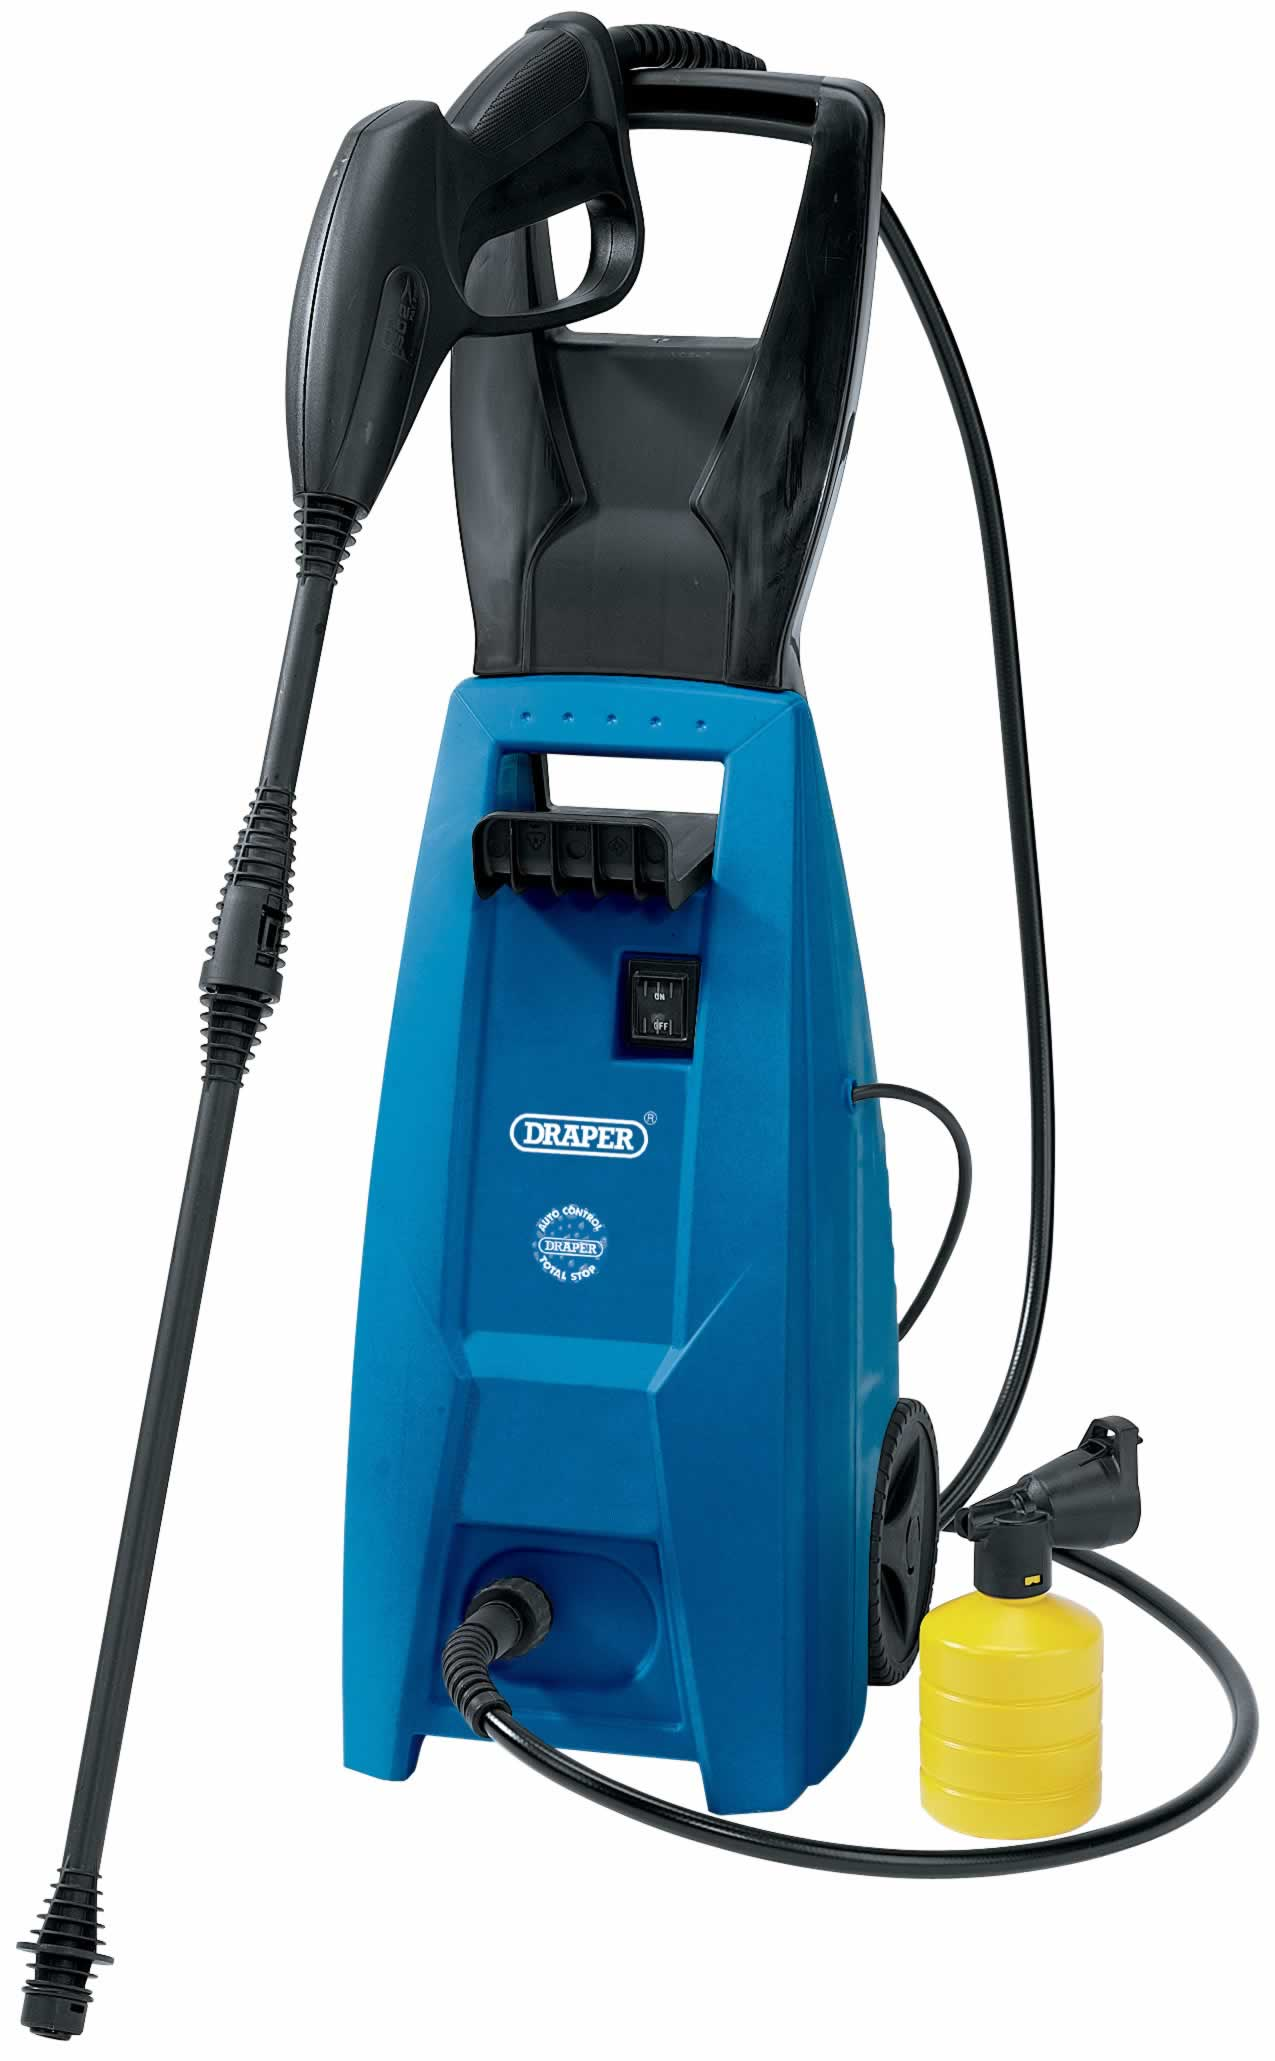 1500W 230V PRESSURE WASHER WITH TOTAL STOP FEATURE